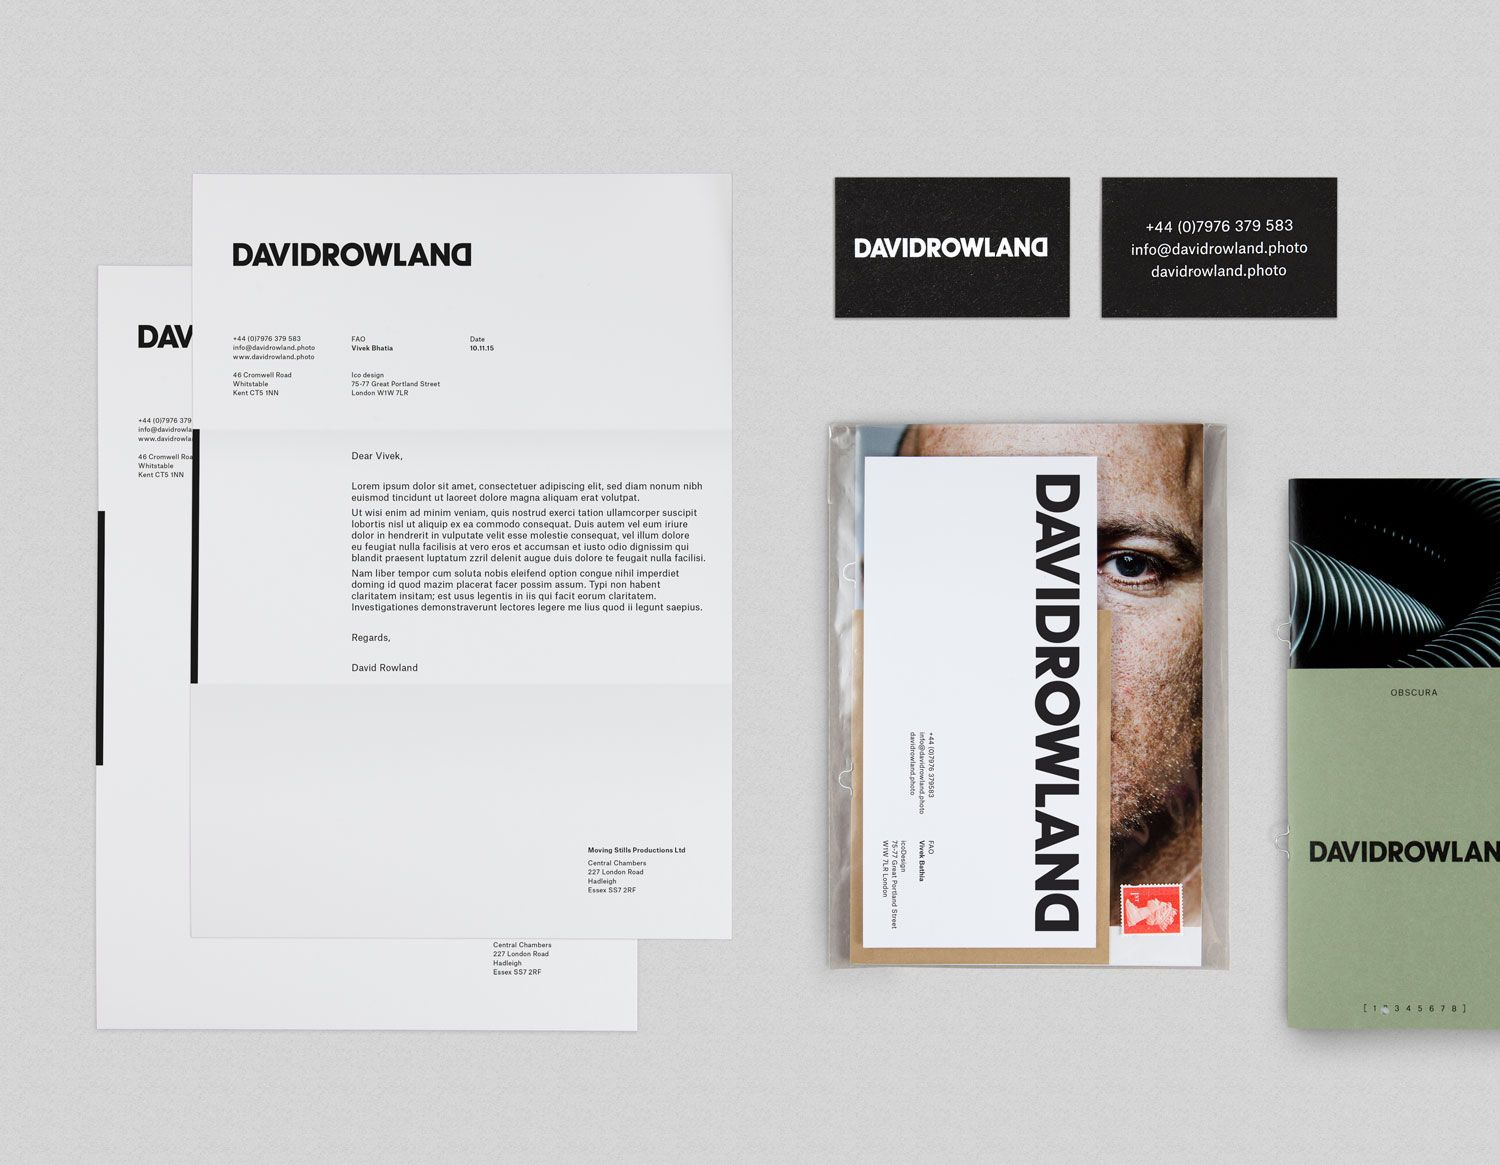 New branding for david rowland by ico design bpo brand identity brand identity headed paper business cards and lookbook by london based colourmoves